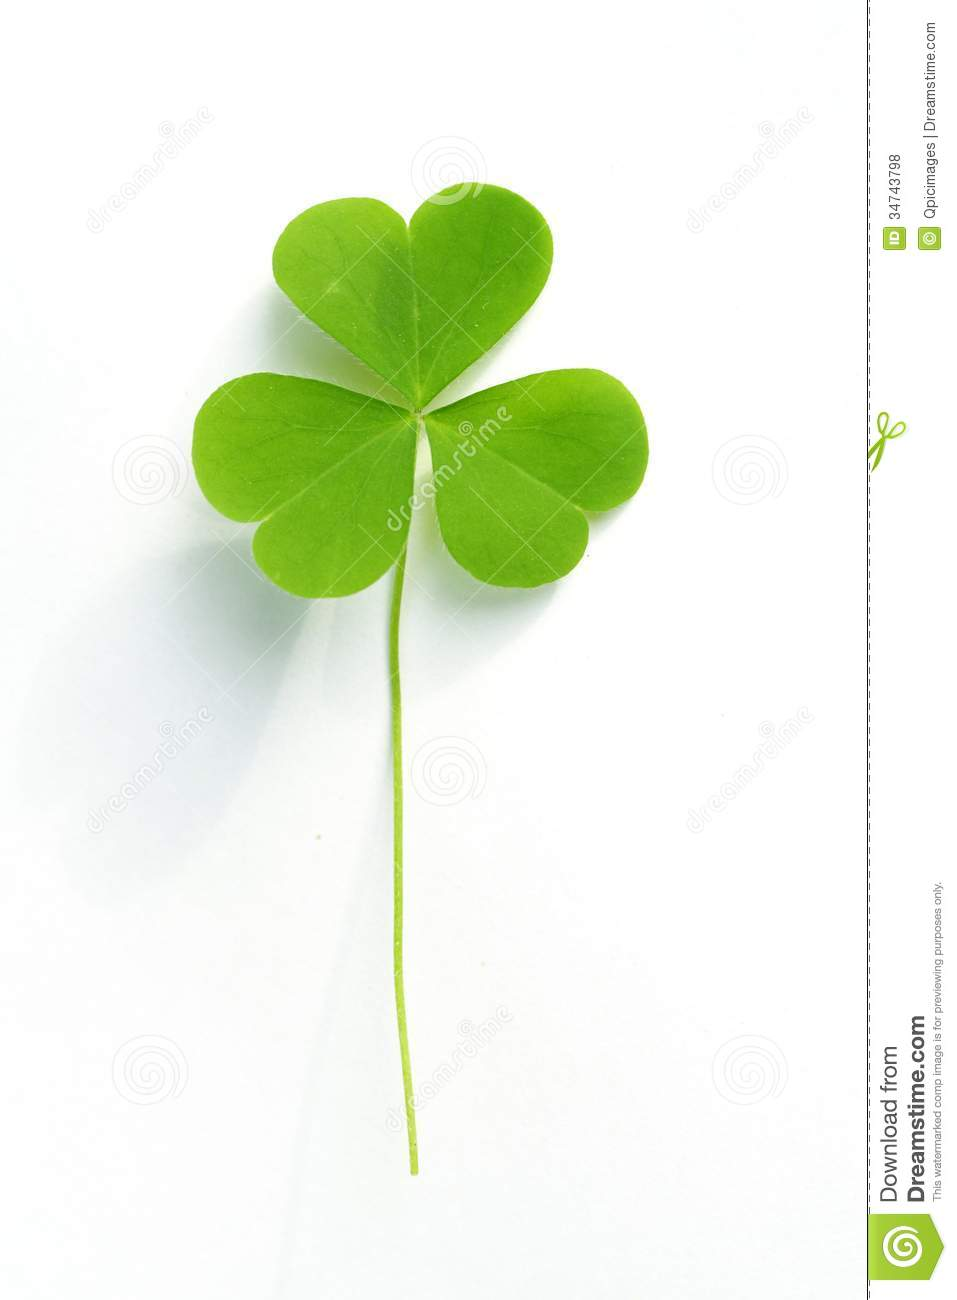 three leaf clover royalty free stock photos image 34743798